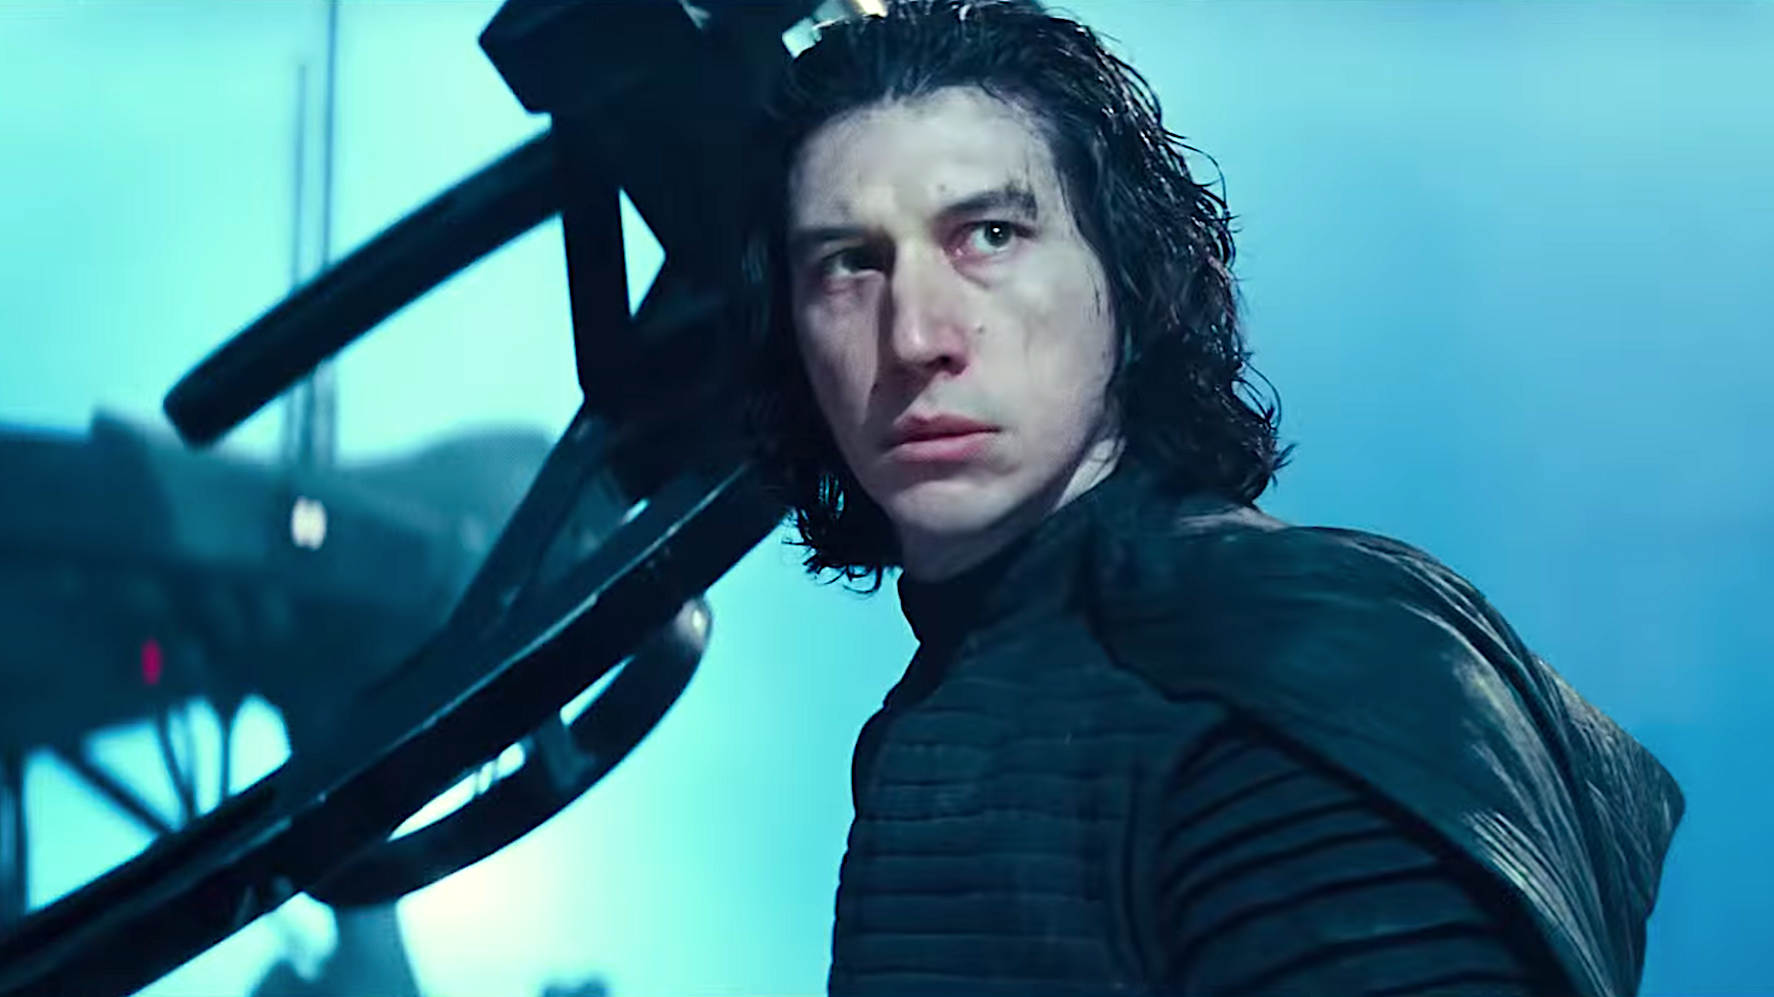 Ben Solo, who fell to the dark side as Kylo Ren, will be getting a new prequel series in the near future.